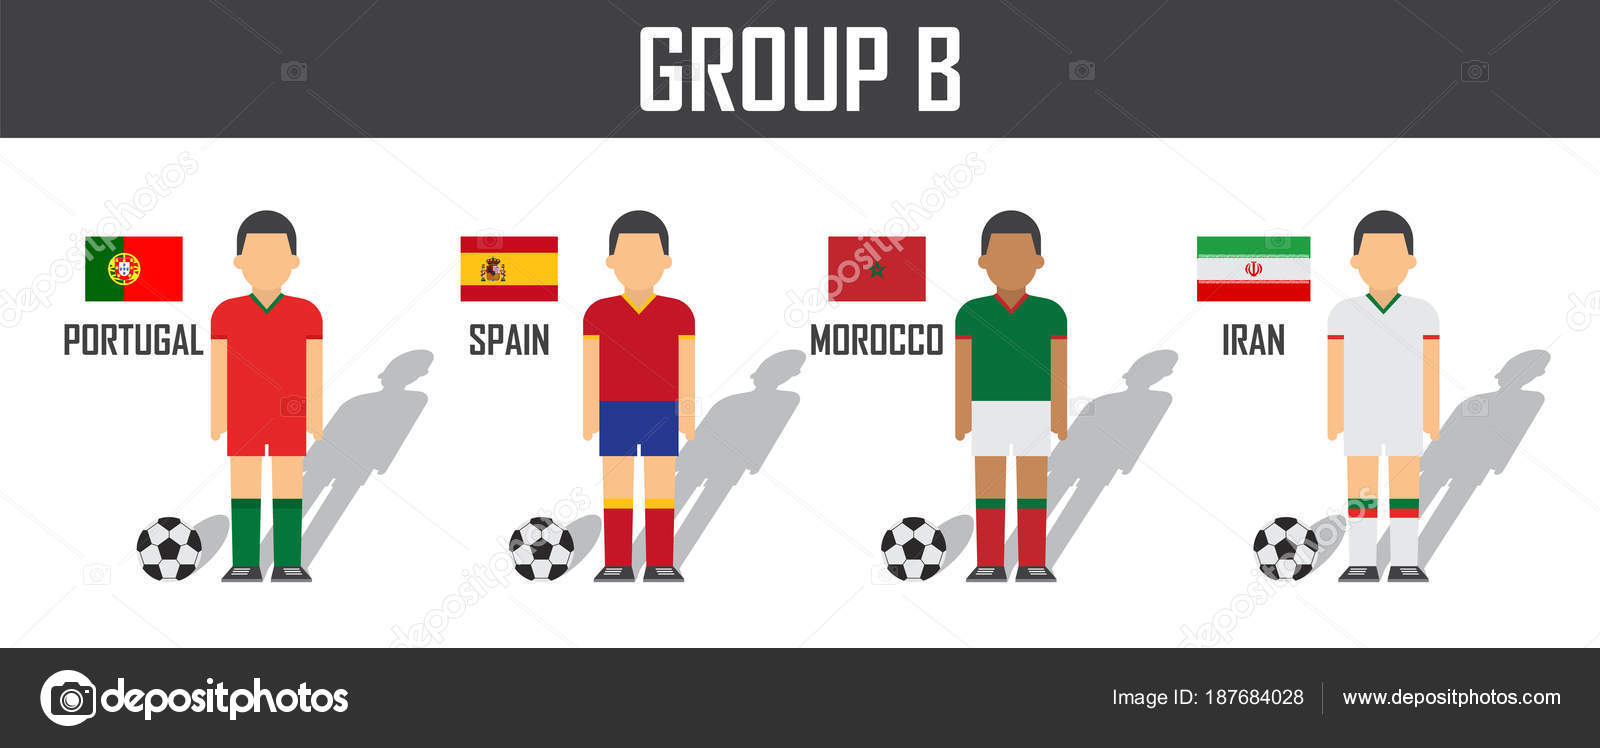 meet afce1 1756e Soccer cup 2018 team group B . Football players with jersey ...